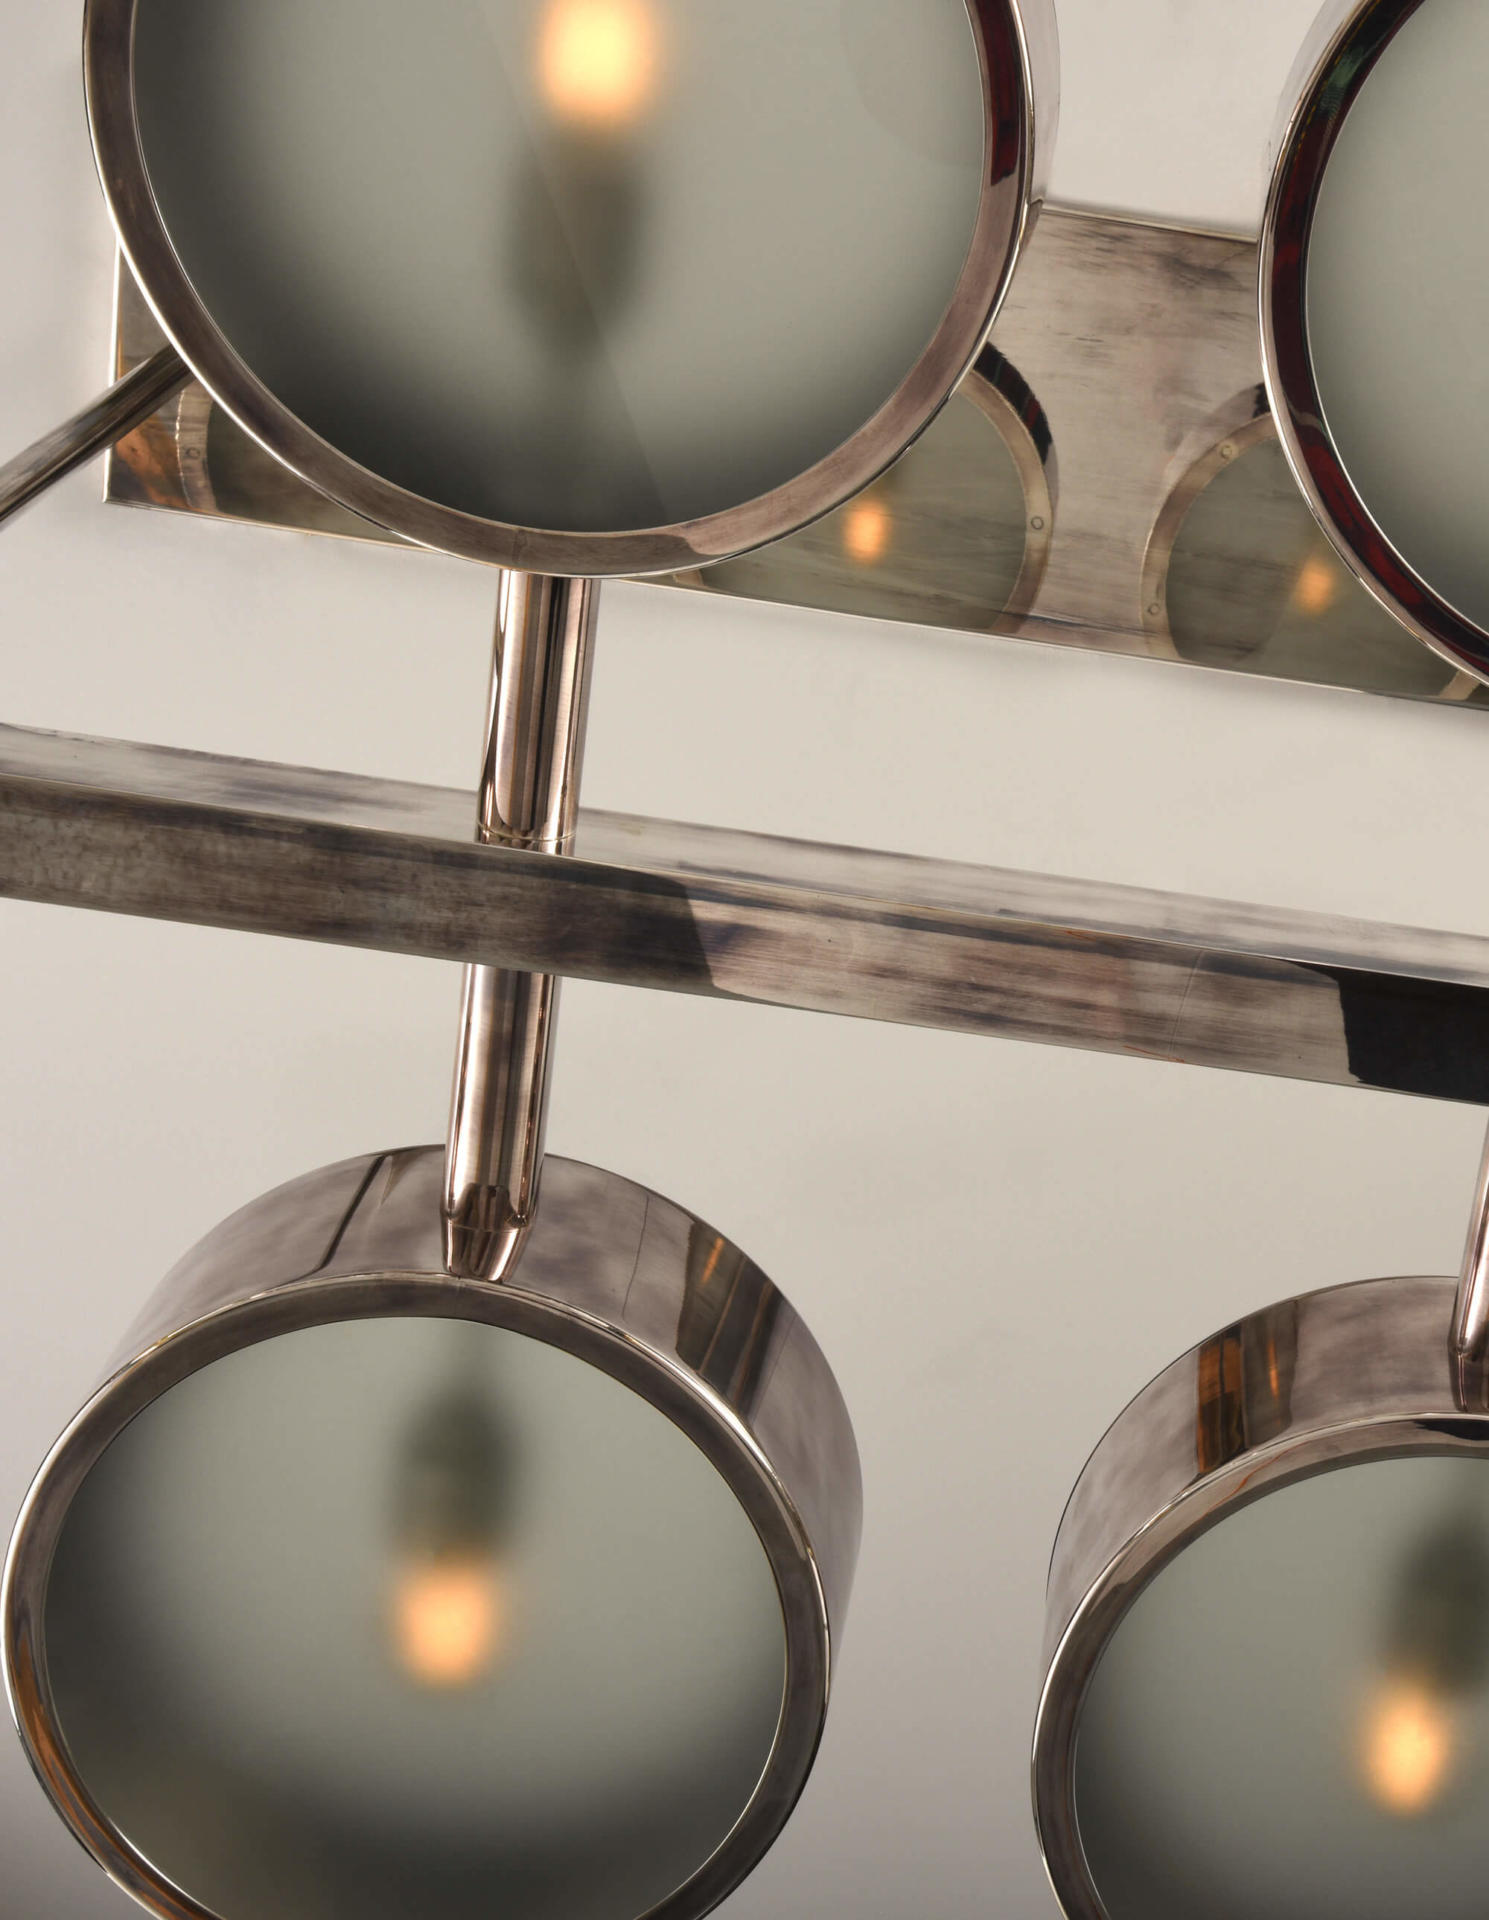 Halo Plafonnier Ceiling Light by Collier Webb - luxury dining and kitchen island lighting